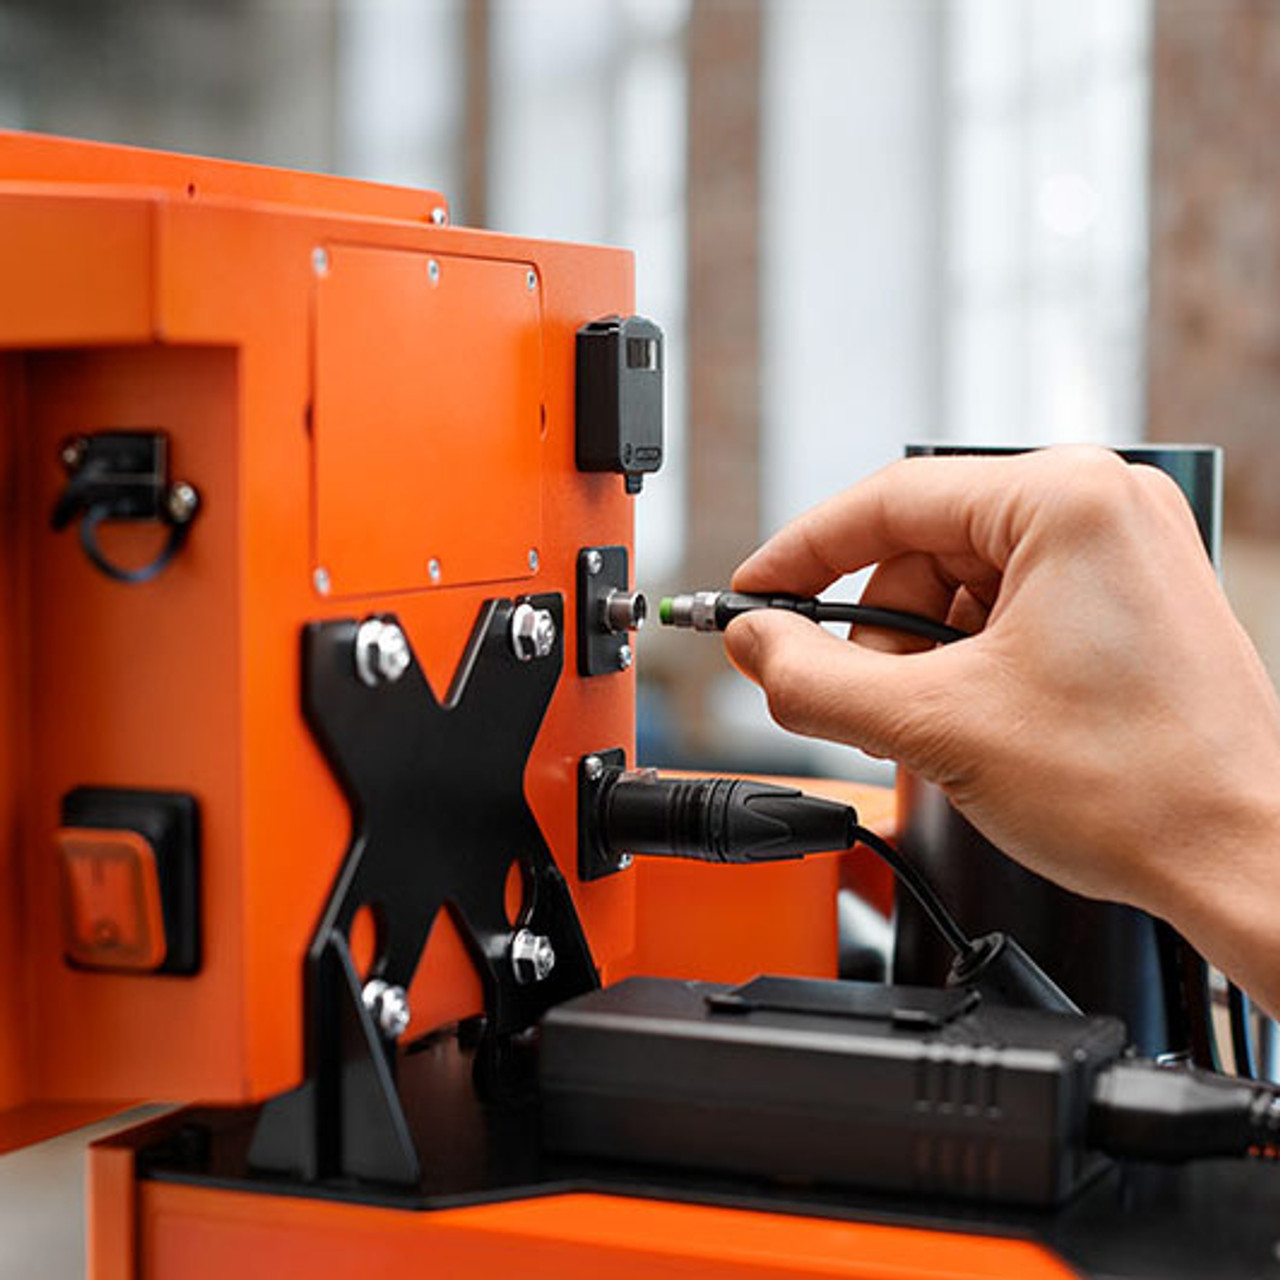 Attaching the connection cable of the EASYSTICK ruler to the computer